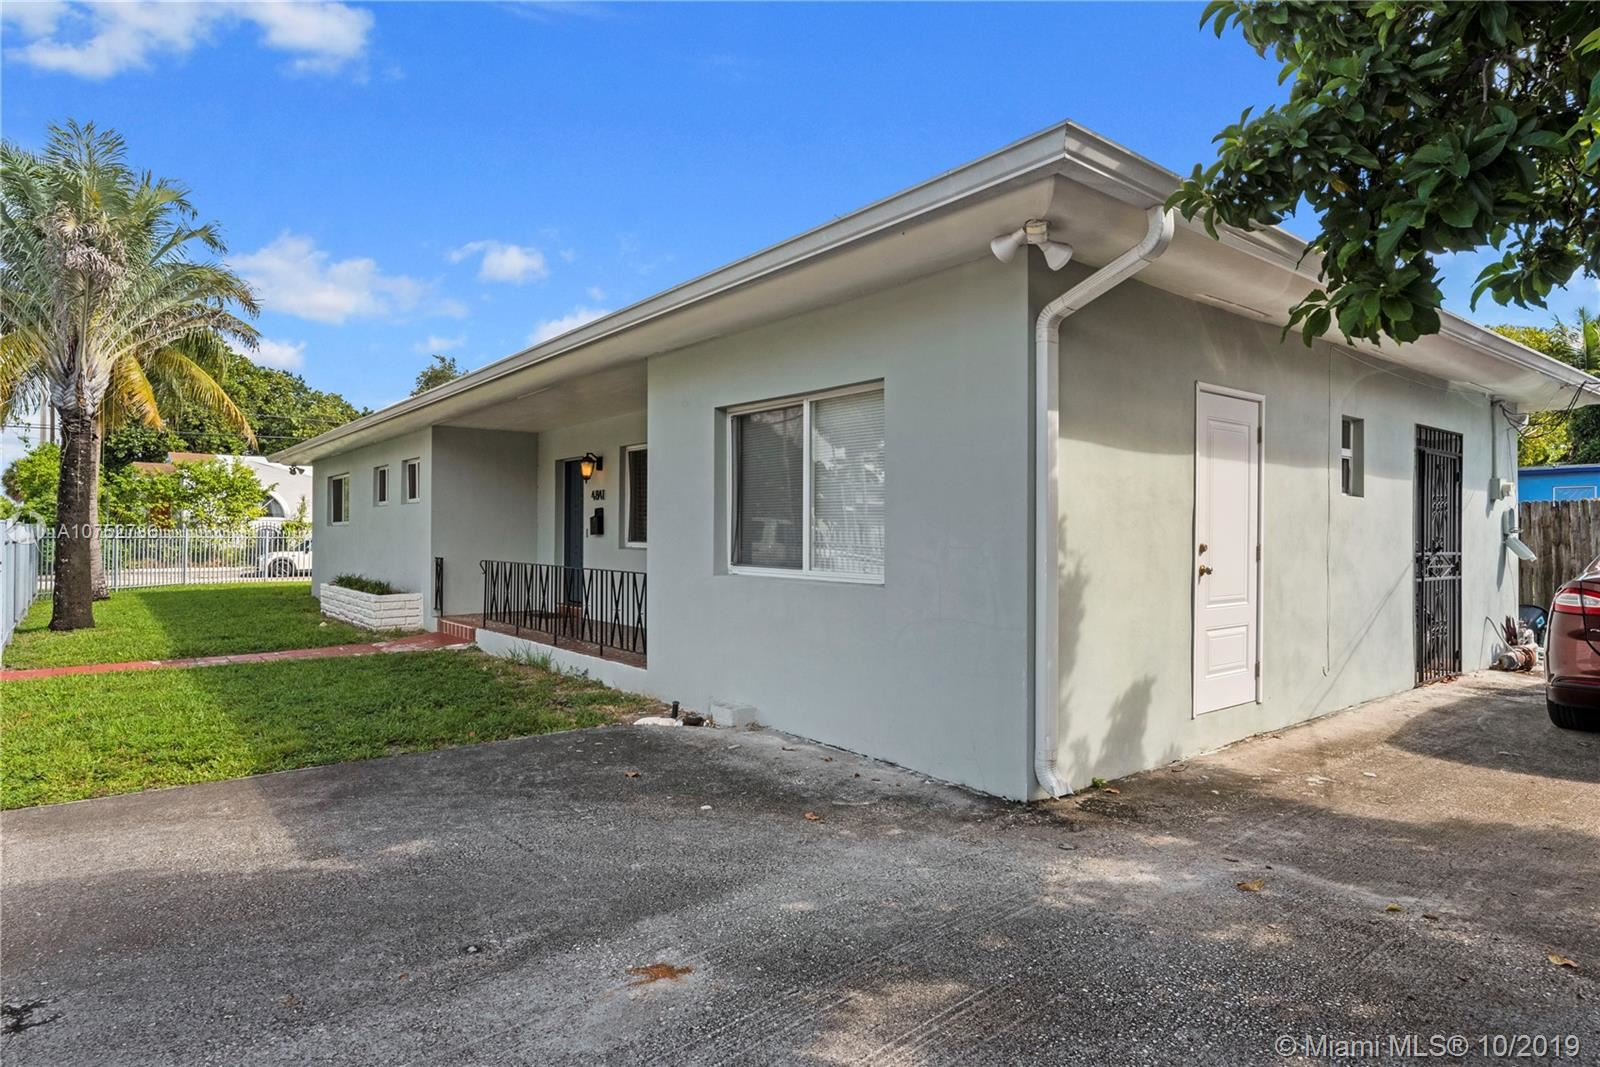 4841 NW 1st Ave, Miami, FL 33127 - MLS#: A10752786